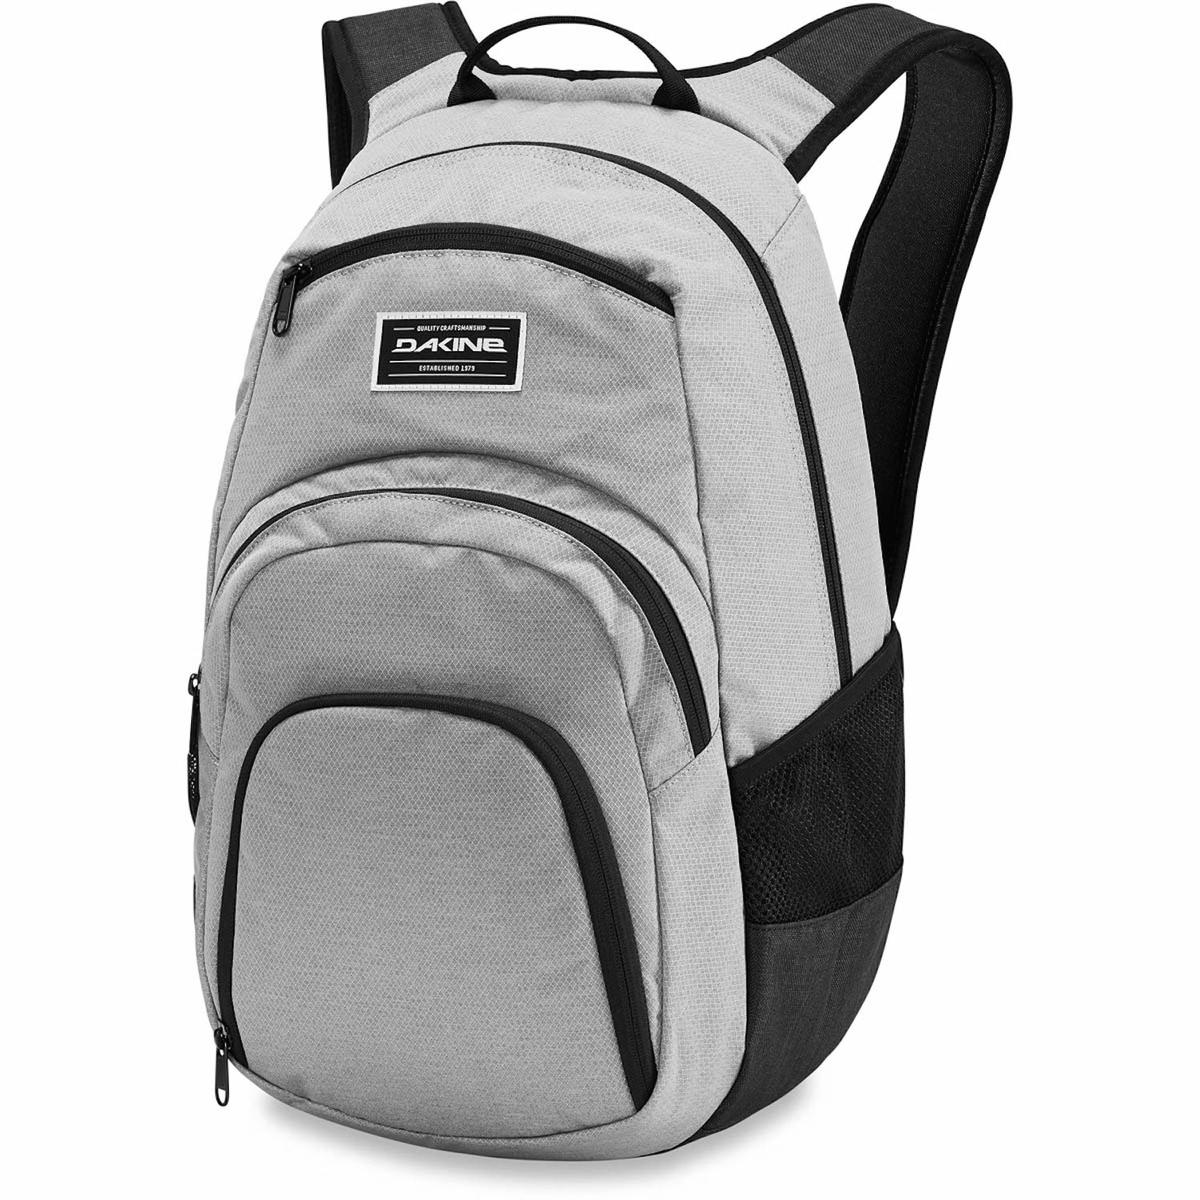 485deae10d7 Dakine Campus 25L Backpack – GotYourGear